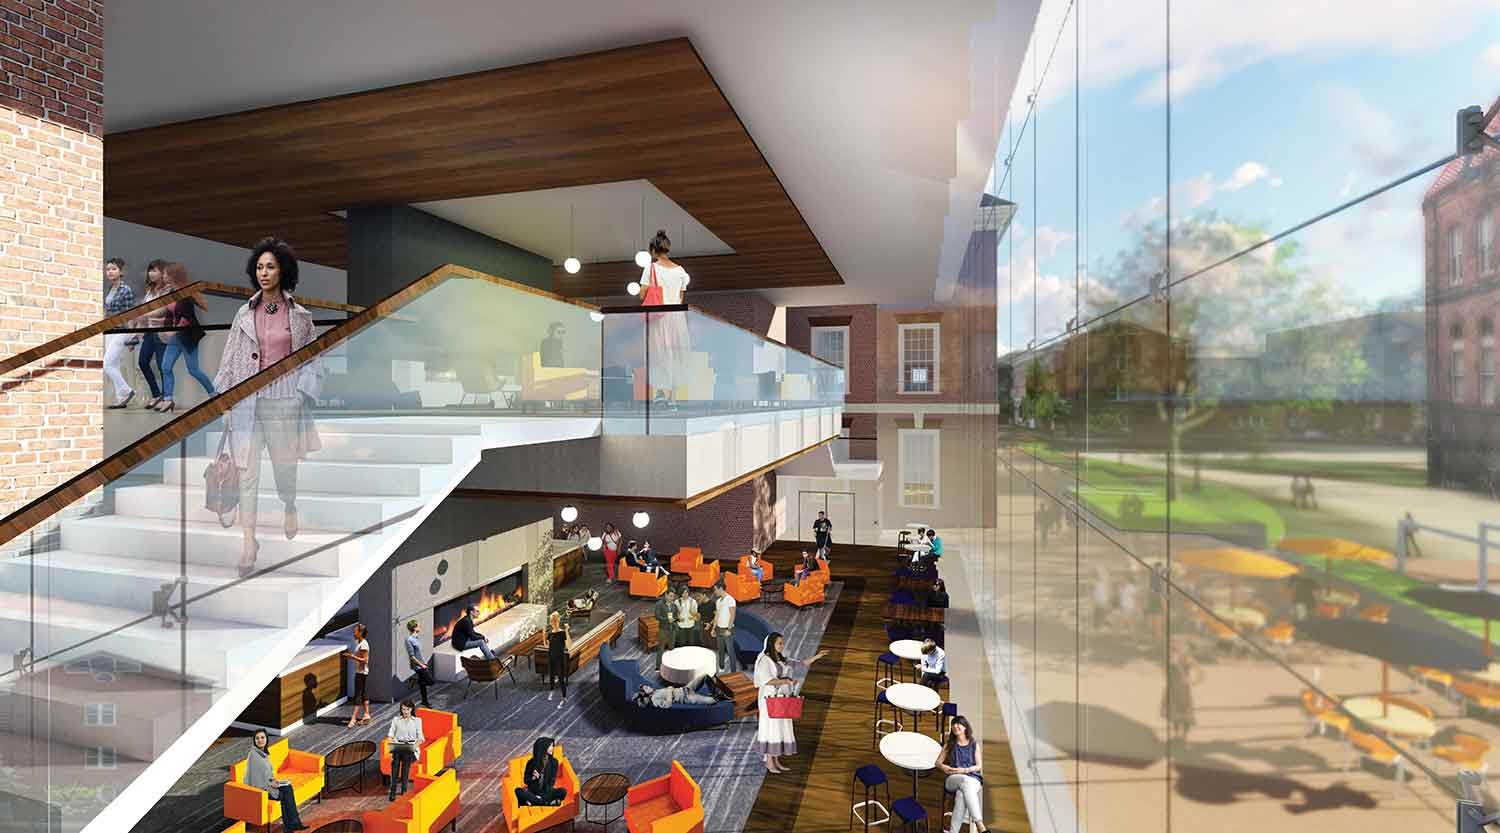 The two-story coffee house could draw visitors into the Illini Union.